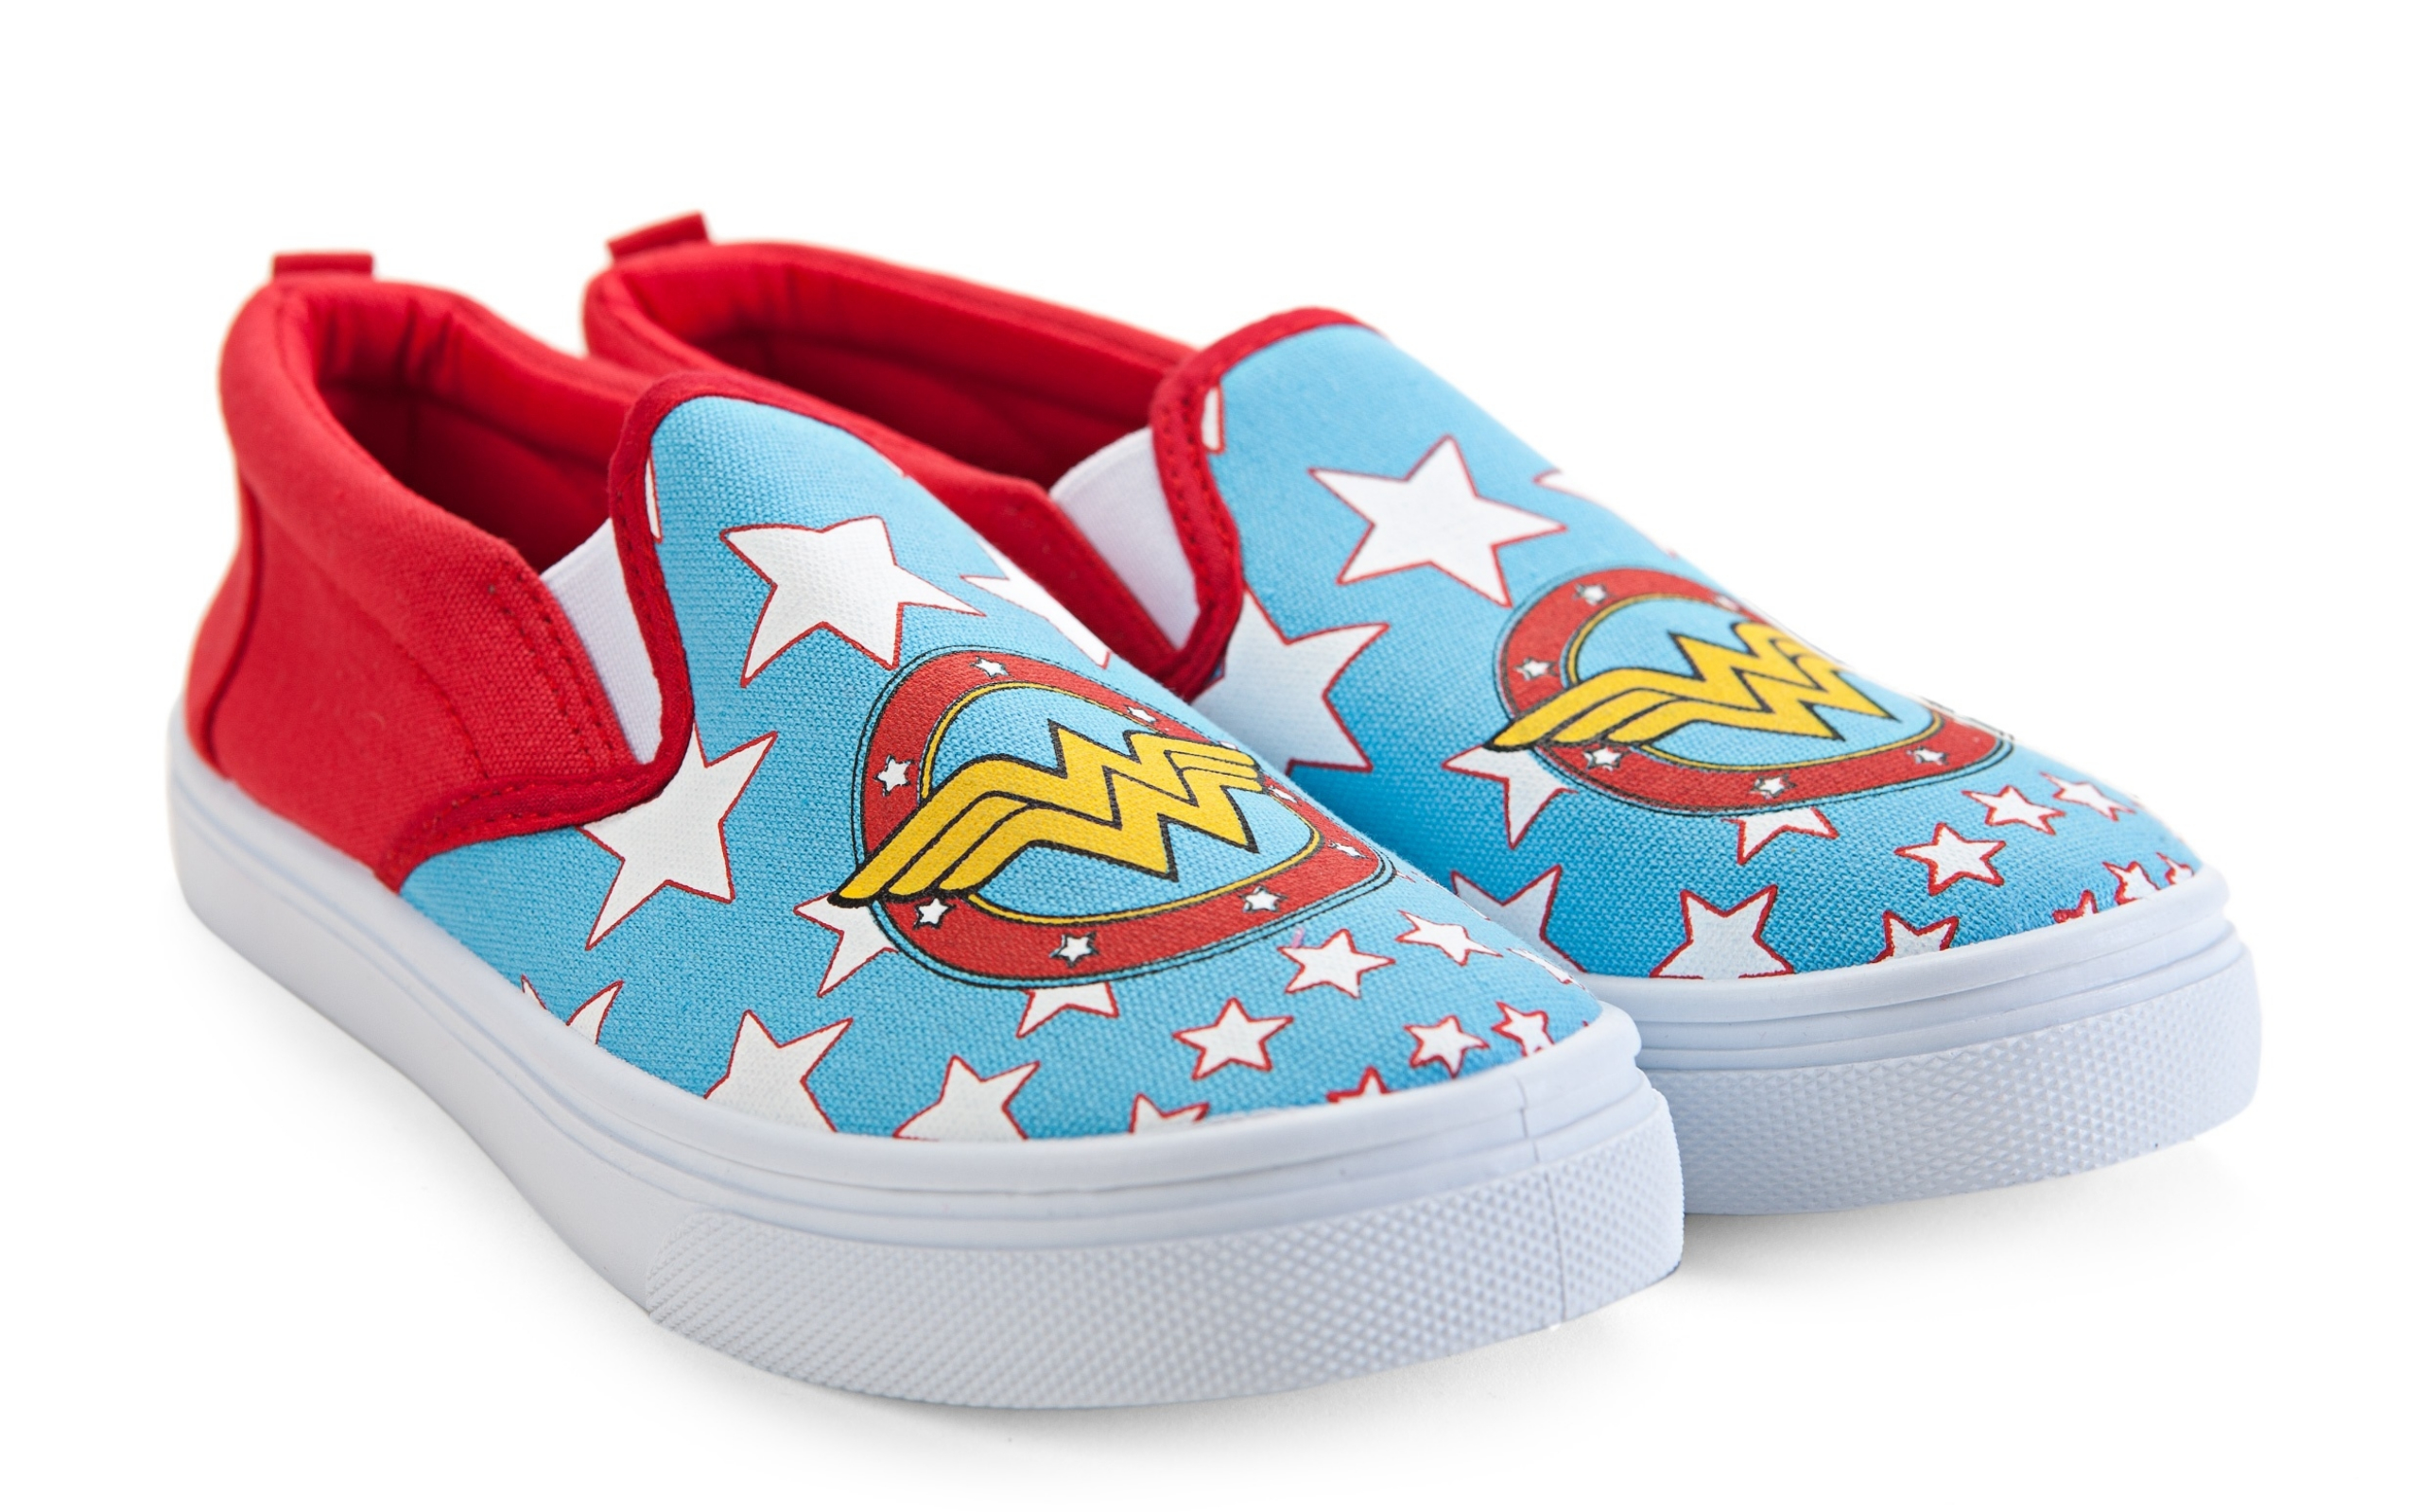 newest exquisite craftsmanship new style & luxury Details about Women's Slip On Sneakers - Wonder Woman, Small